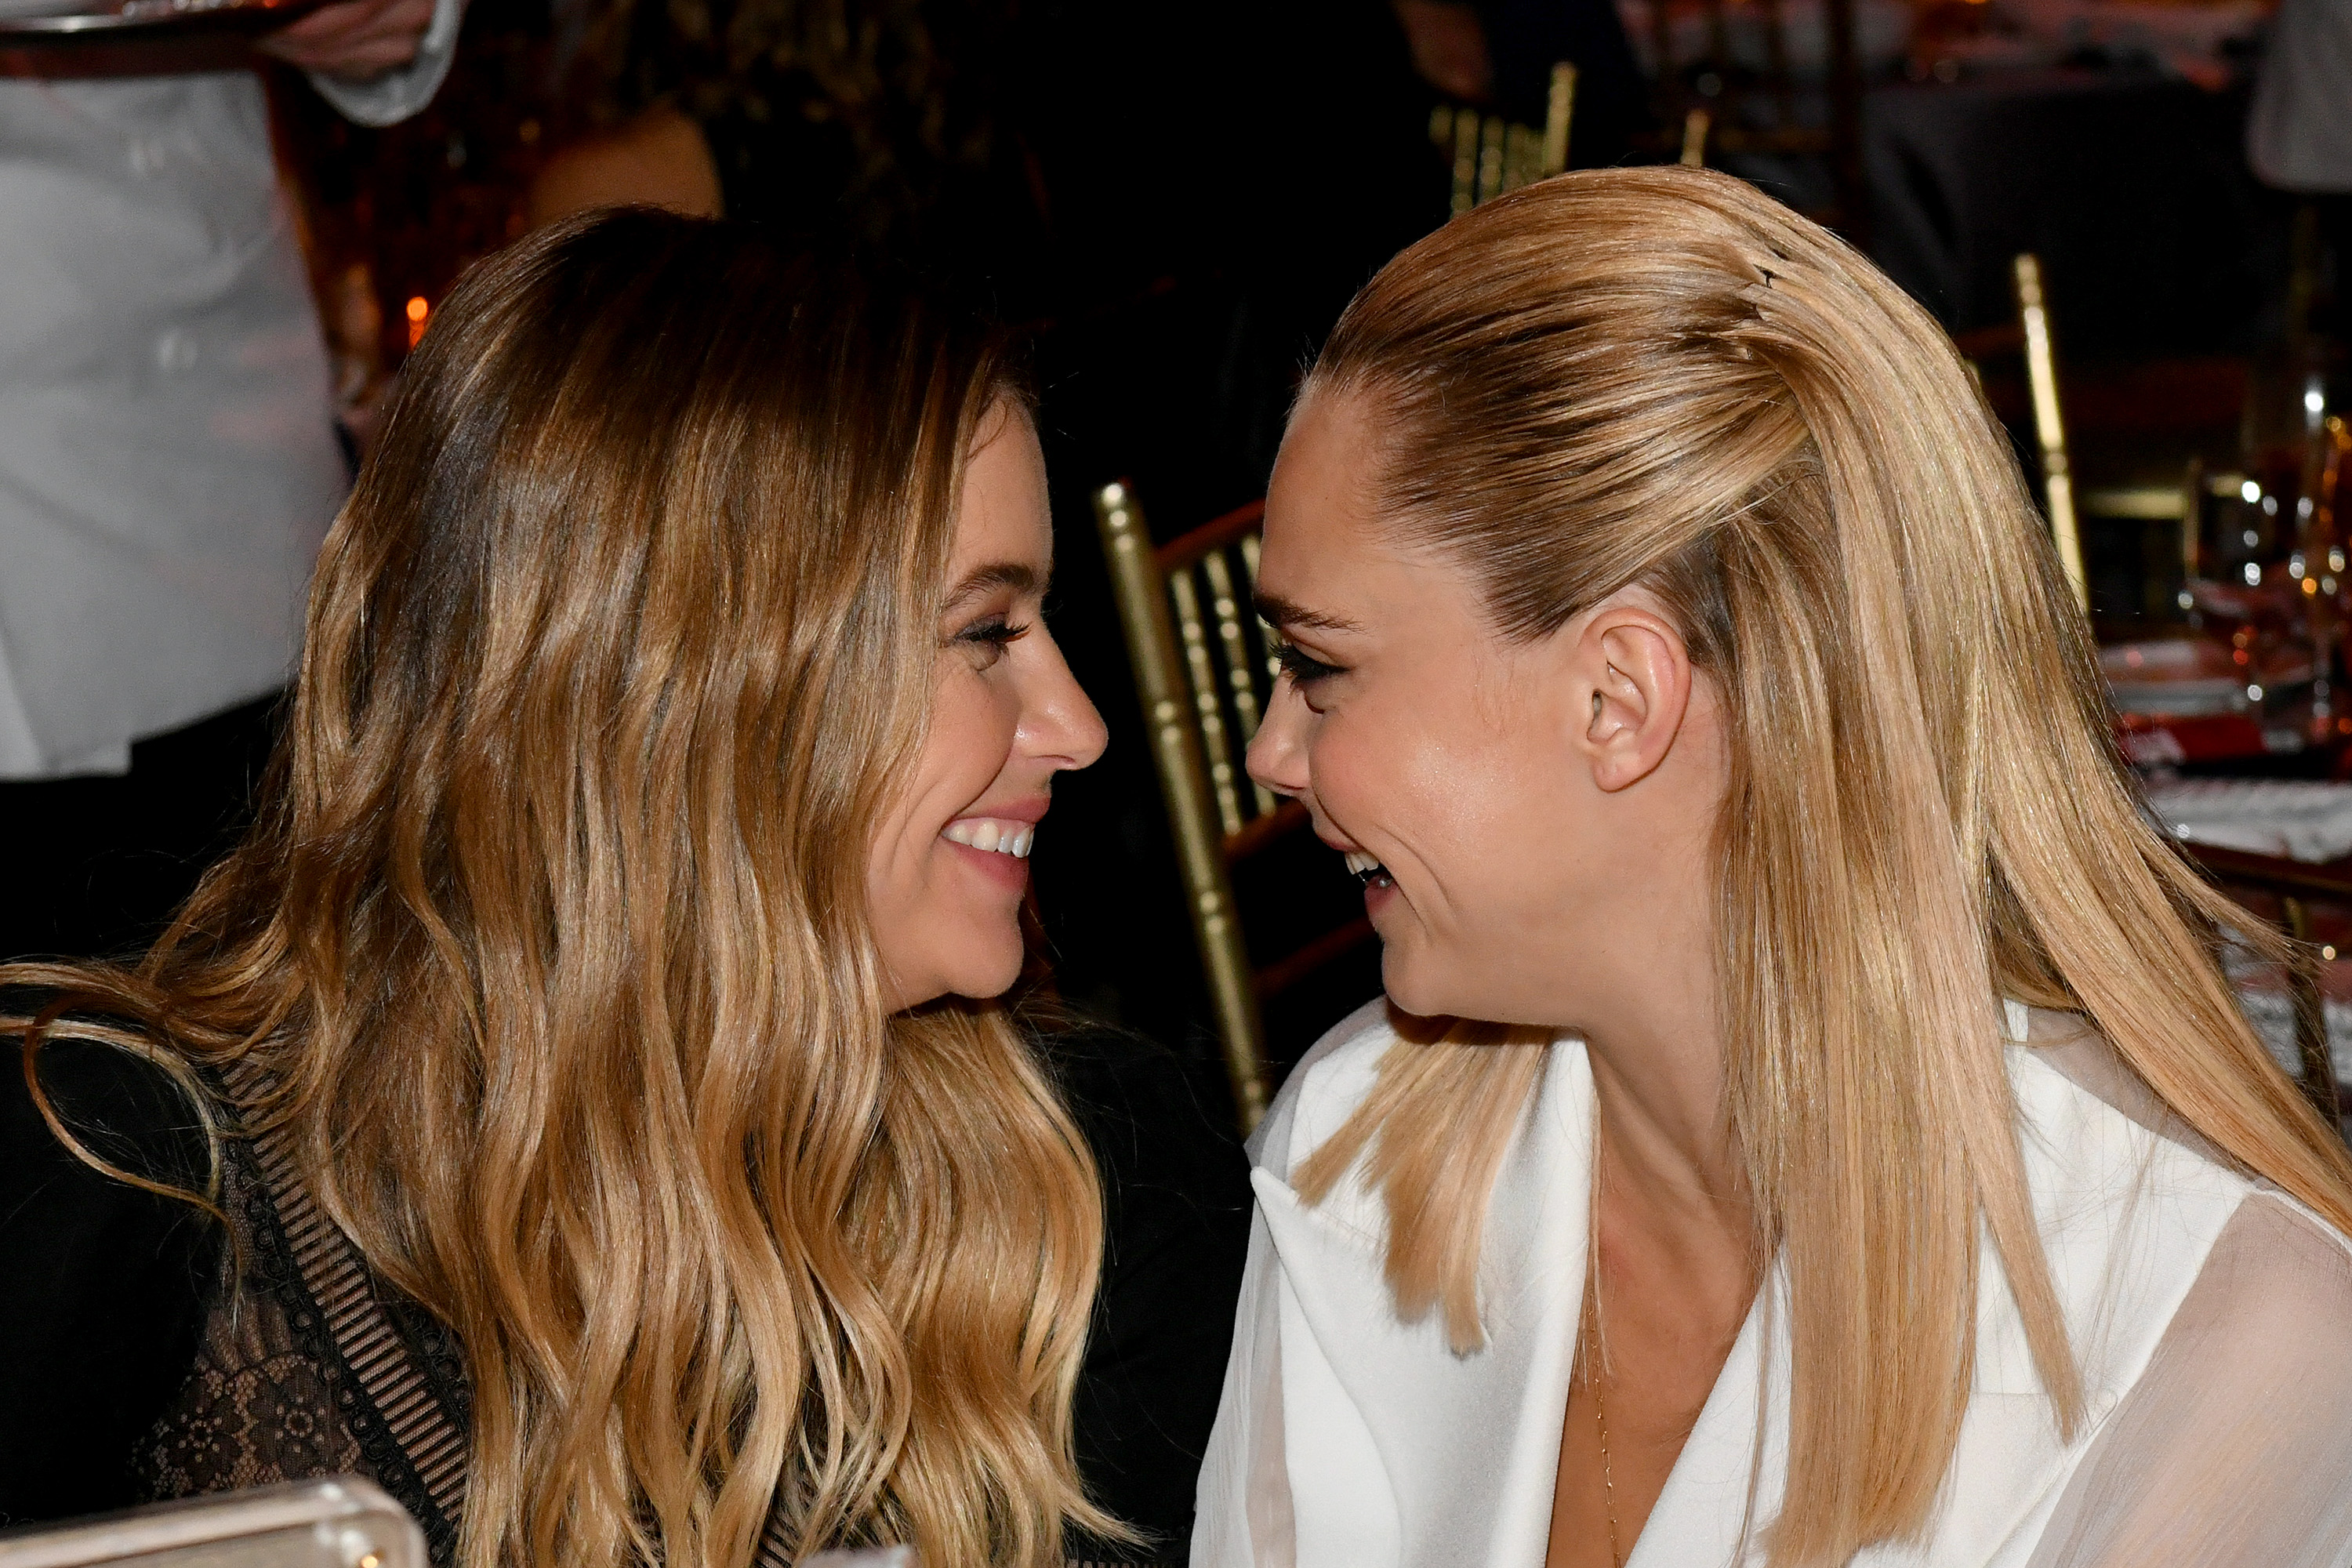 Cara Delevingne Explains Why She Kept Her Relationship with Ashley Benson a Secret